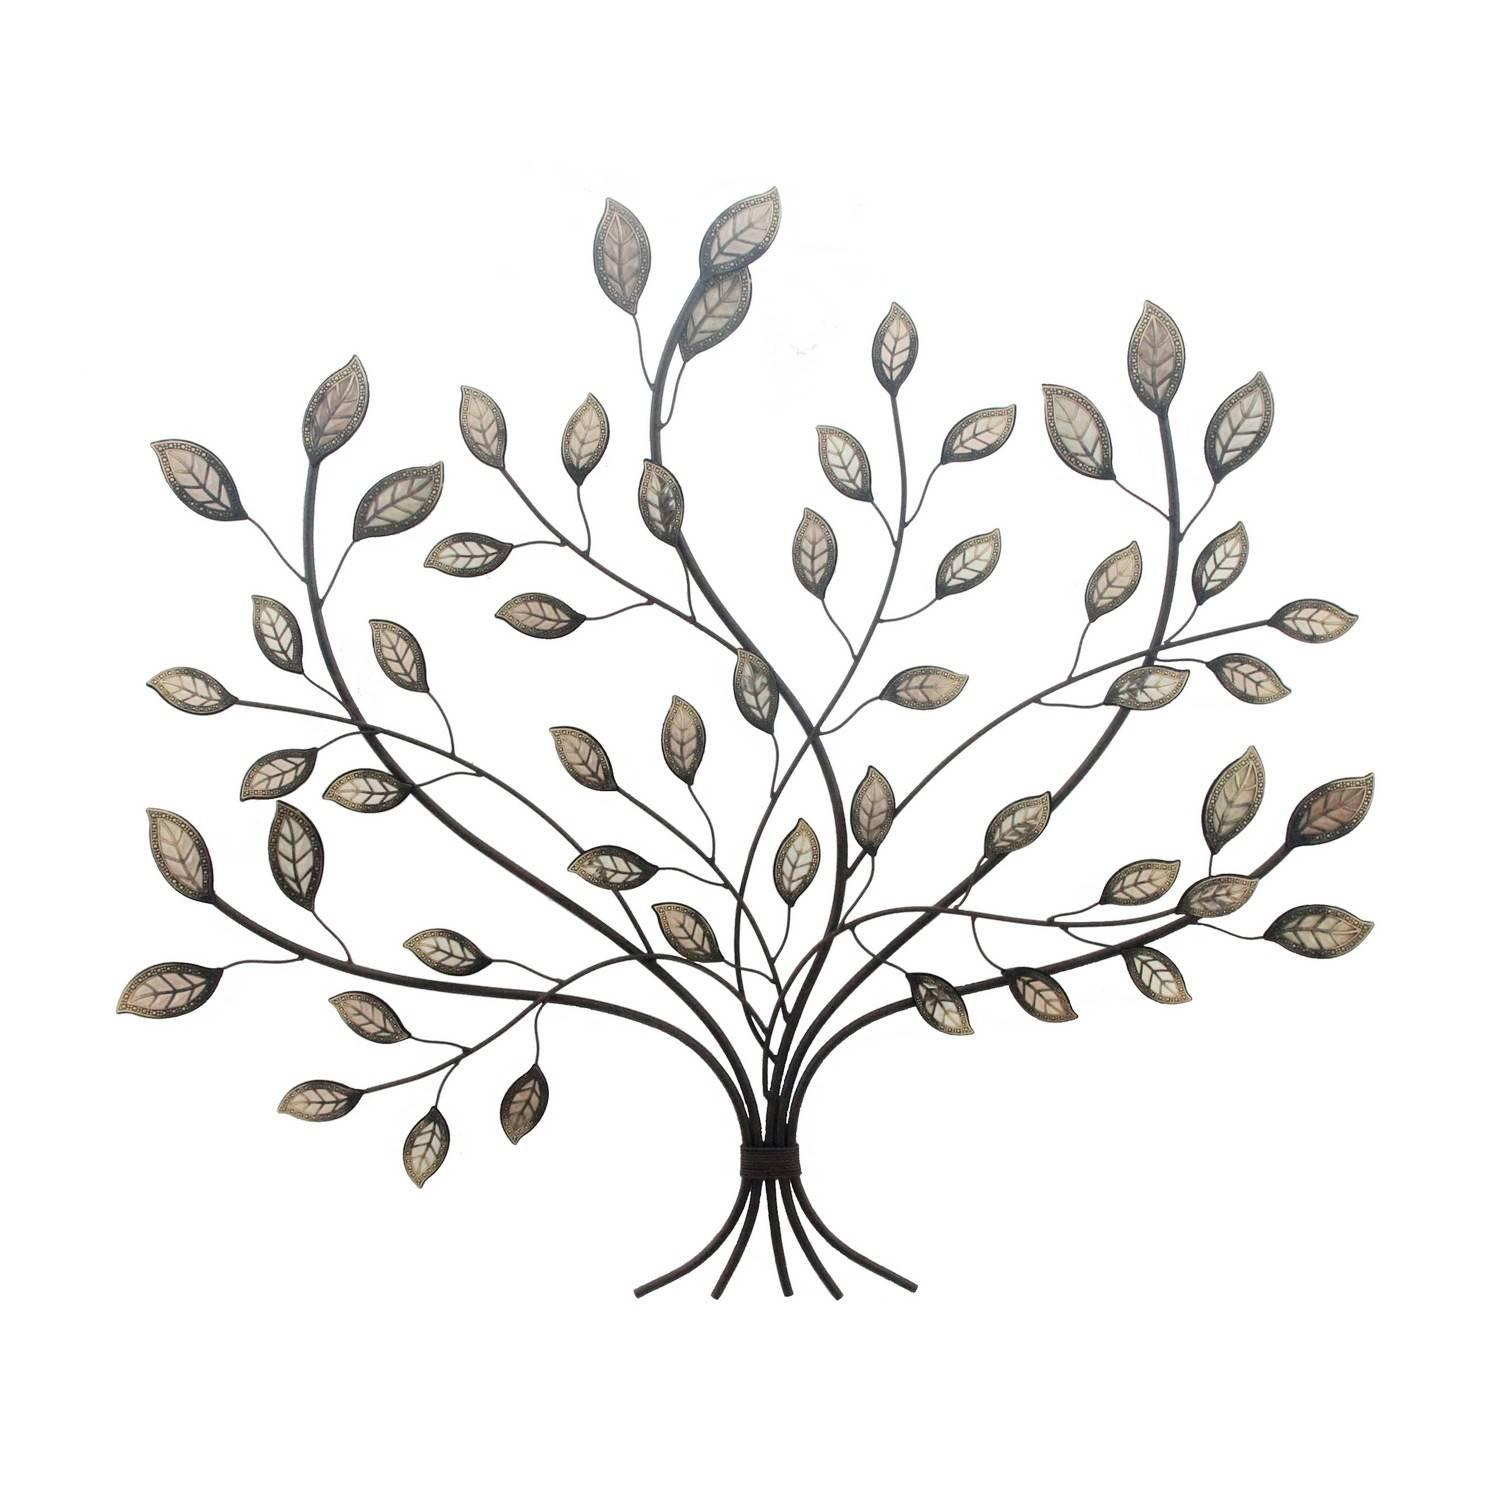 Wall Art Designs: Leaf Wall Art Wall Art Hanging Rustic Bronze For Most Current Metal Wall Art Trees And Leaves (View 17 of 20)